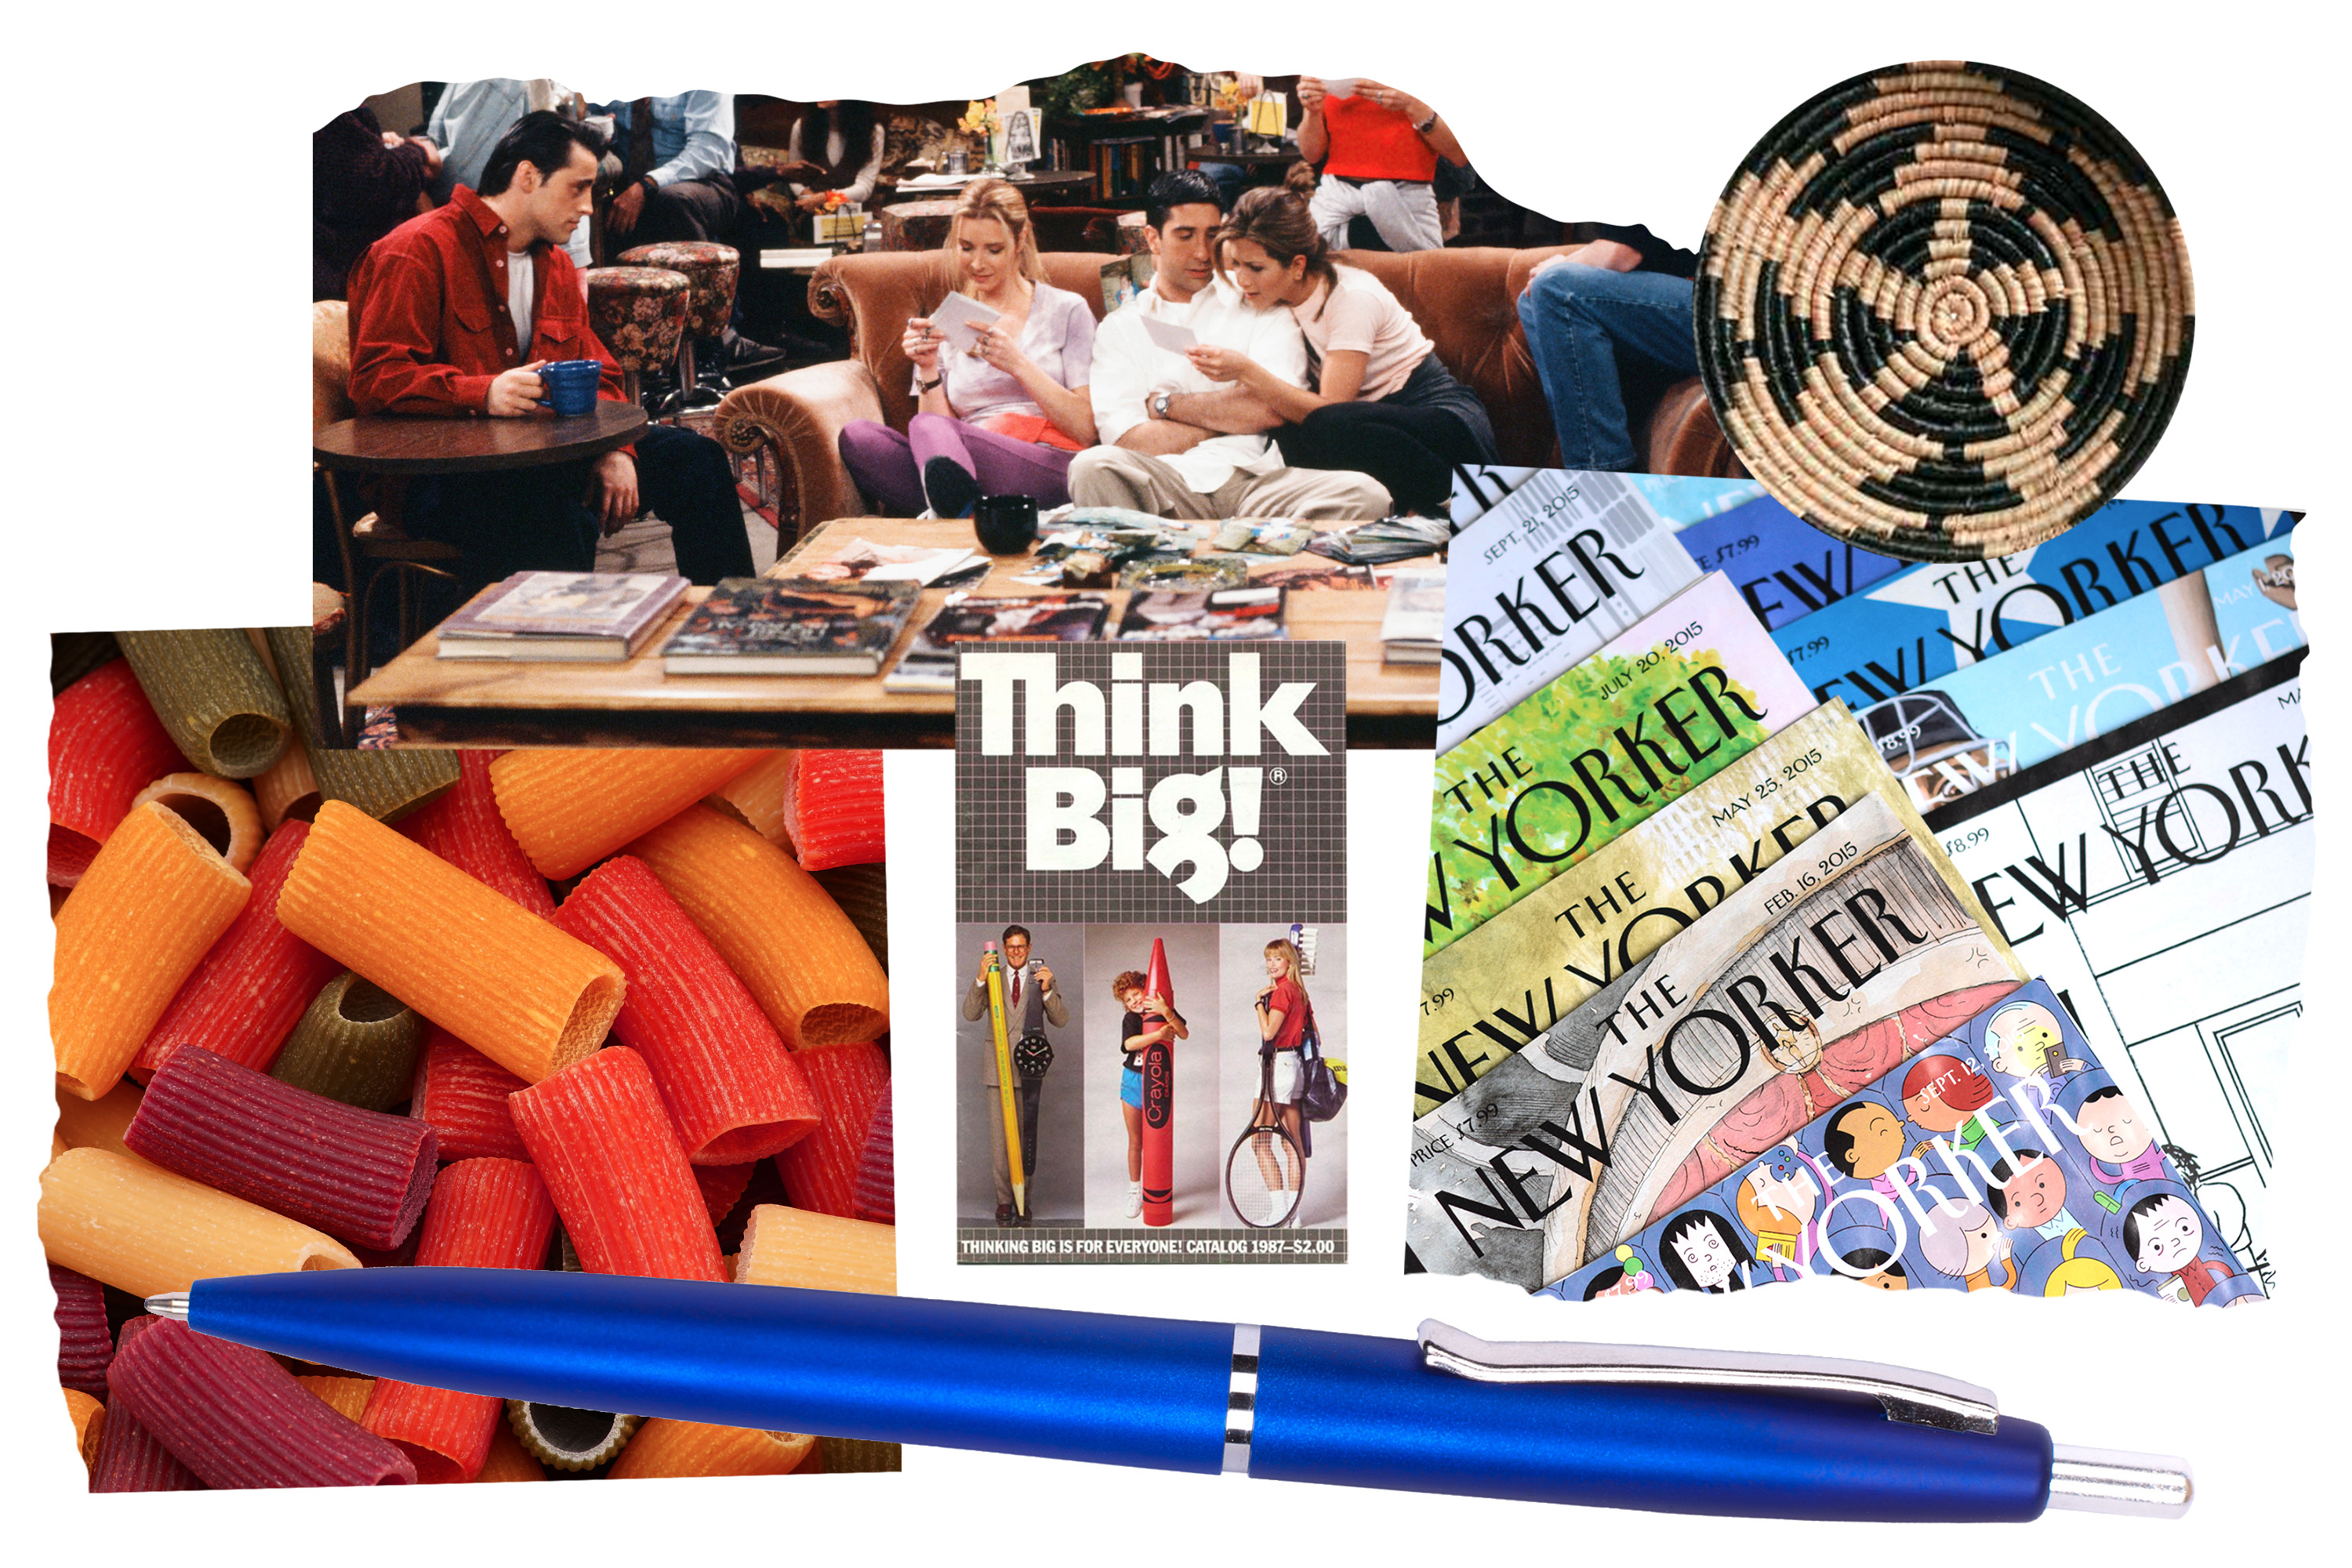 A collage of images that shows the references found in Gigi Hadid's NYC apartment. There is colored pasta, New Yorker magazines, a pen, Friends, and a woven basket.